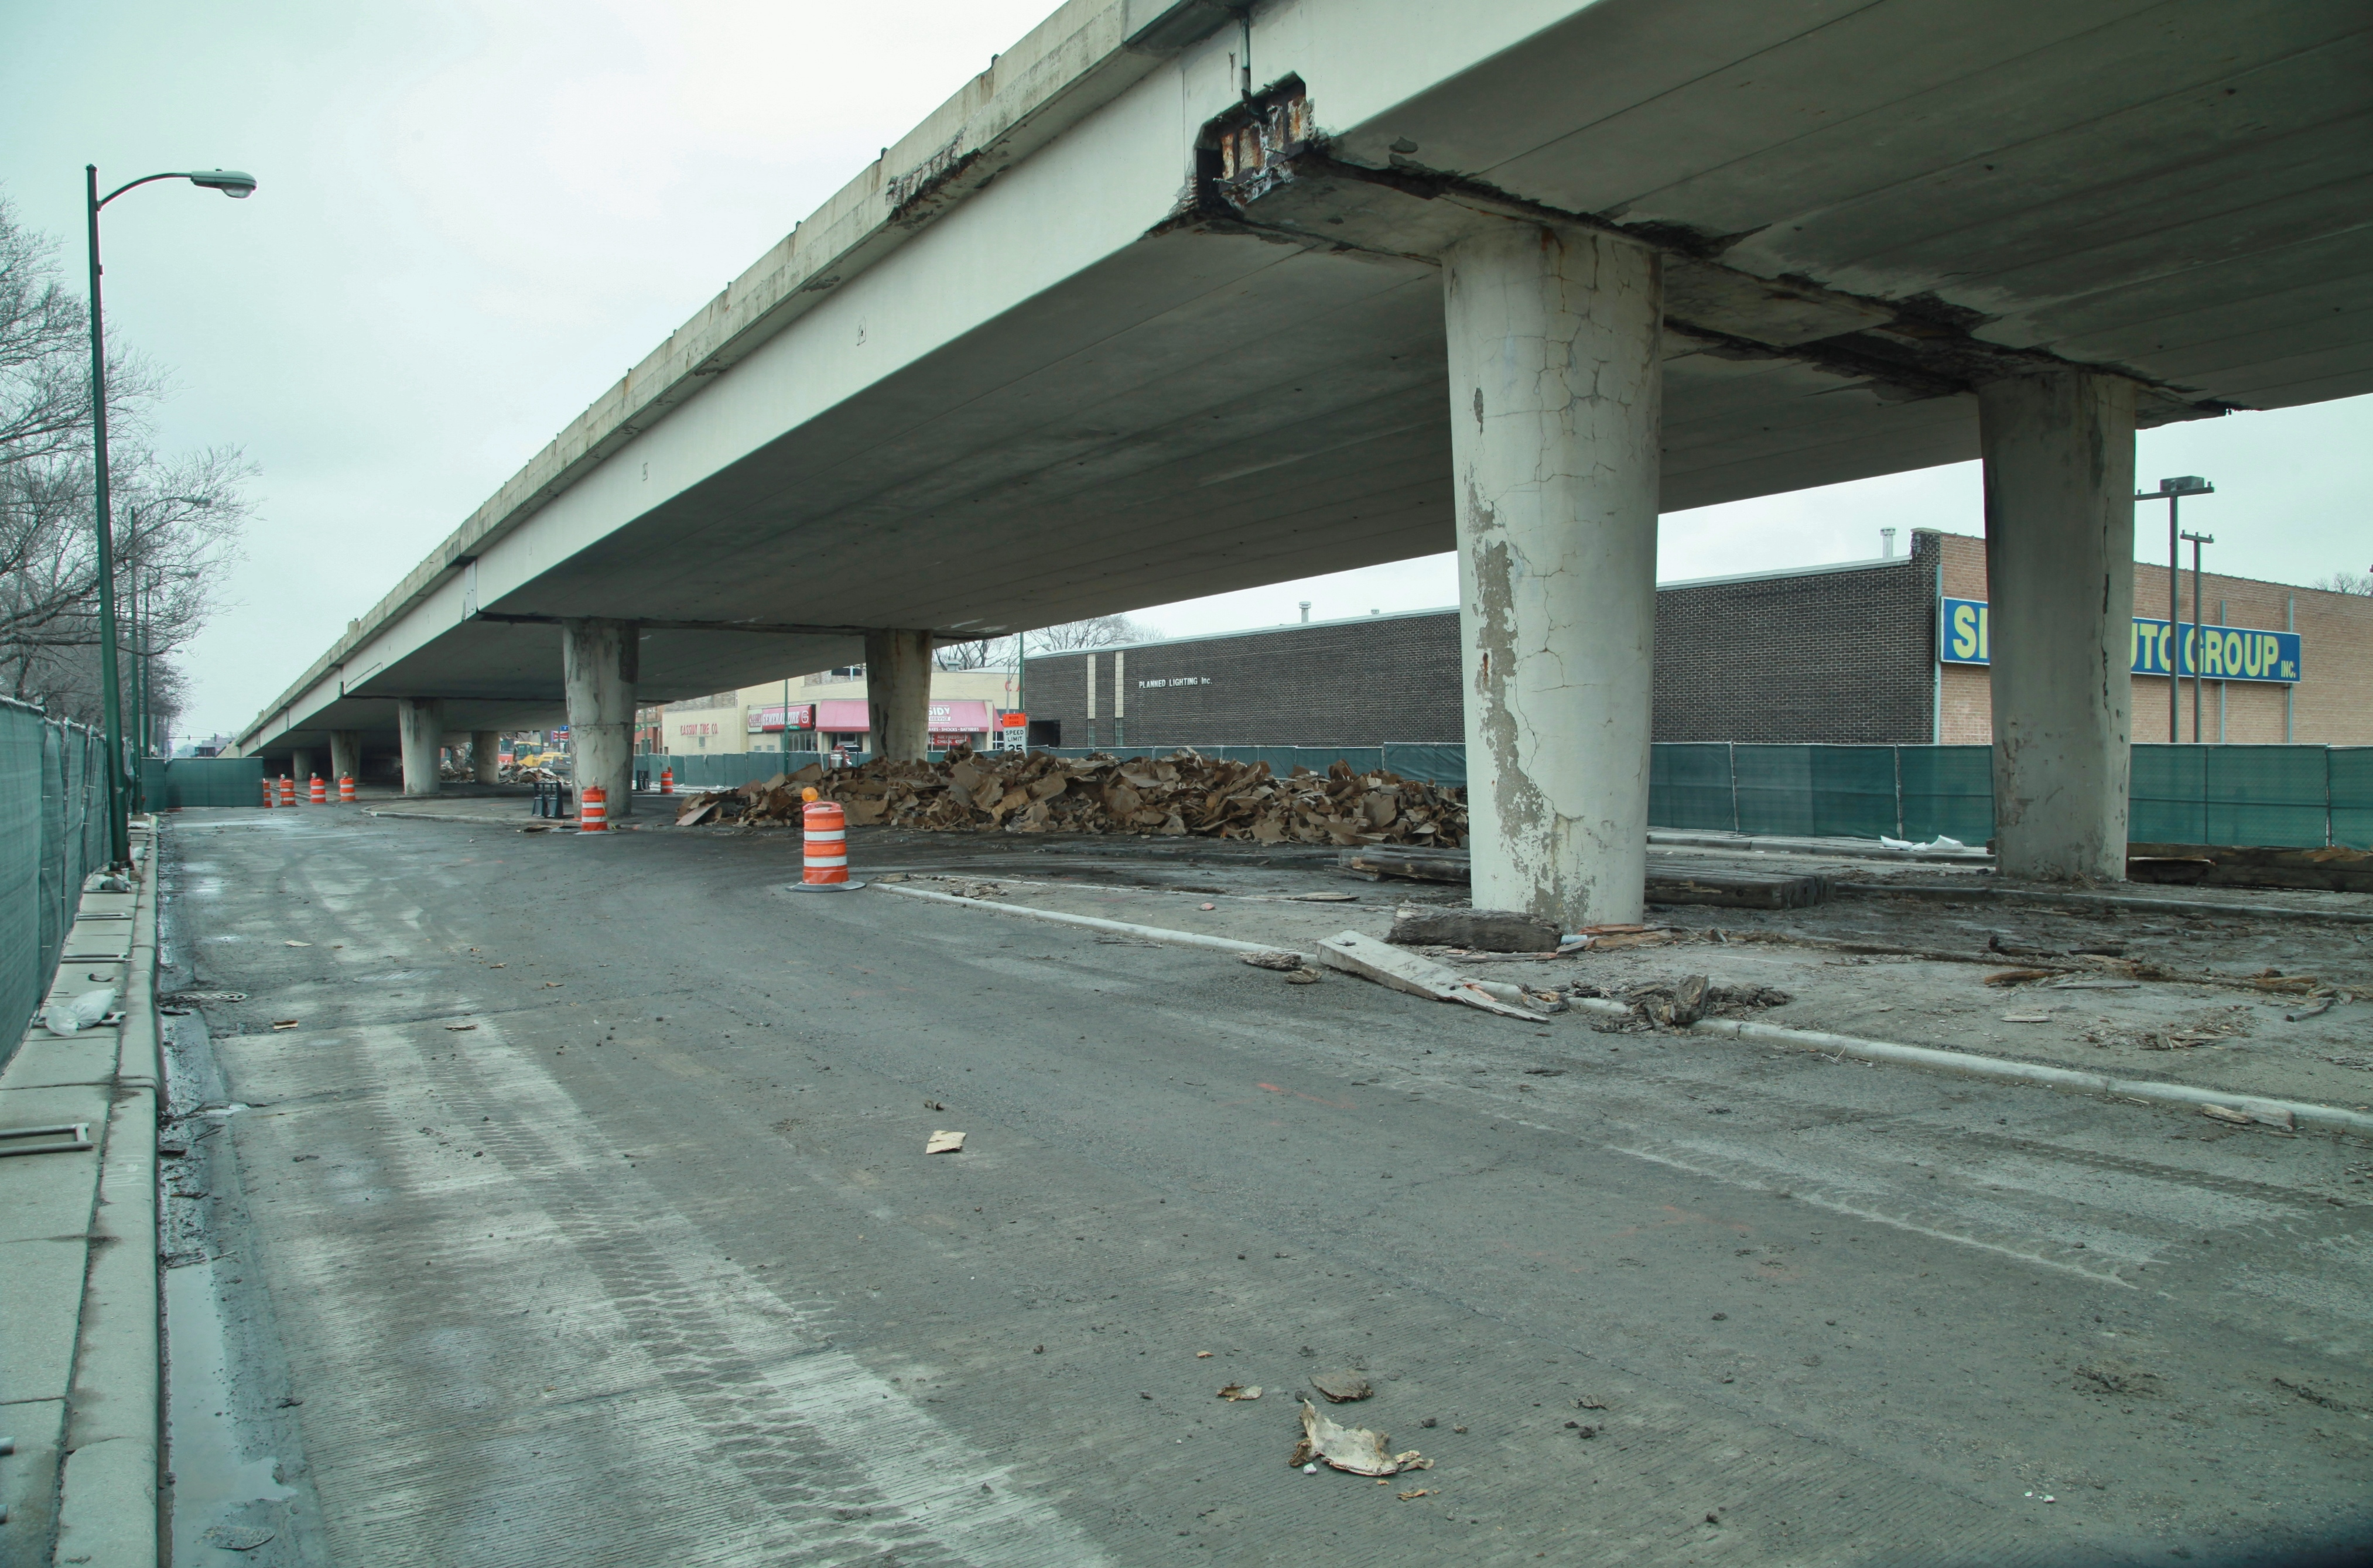 Road Amp Bridge Construction When Scheduling Amp Safety Is Key